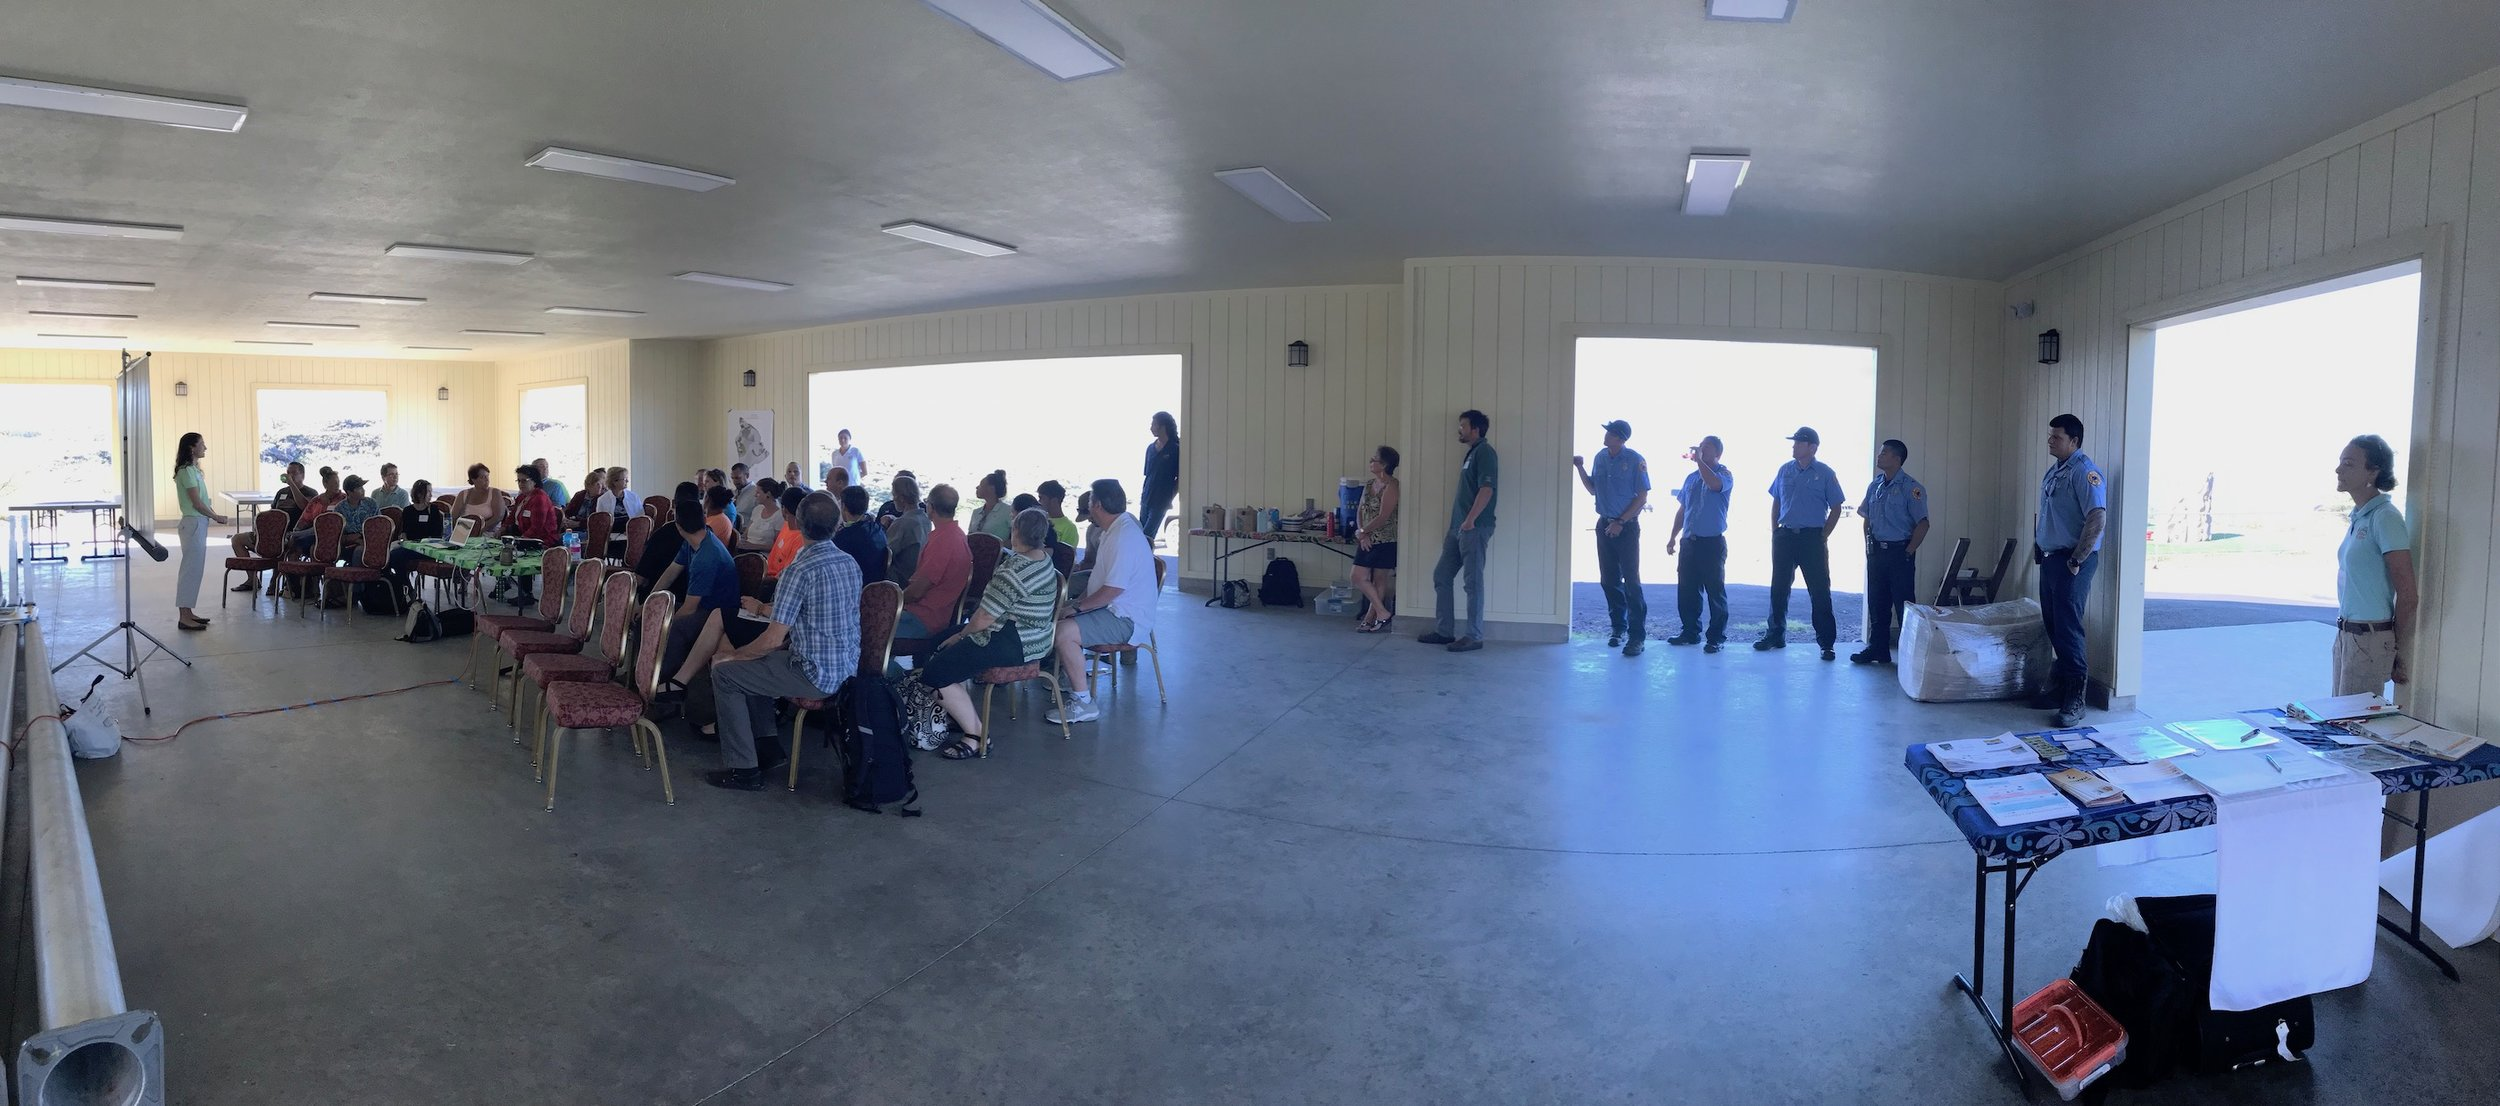 Hawaii Island Kailapa Vegetative Fuels Management Collaborative Action Planning Workshop_2_26_2019_20.jpg